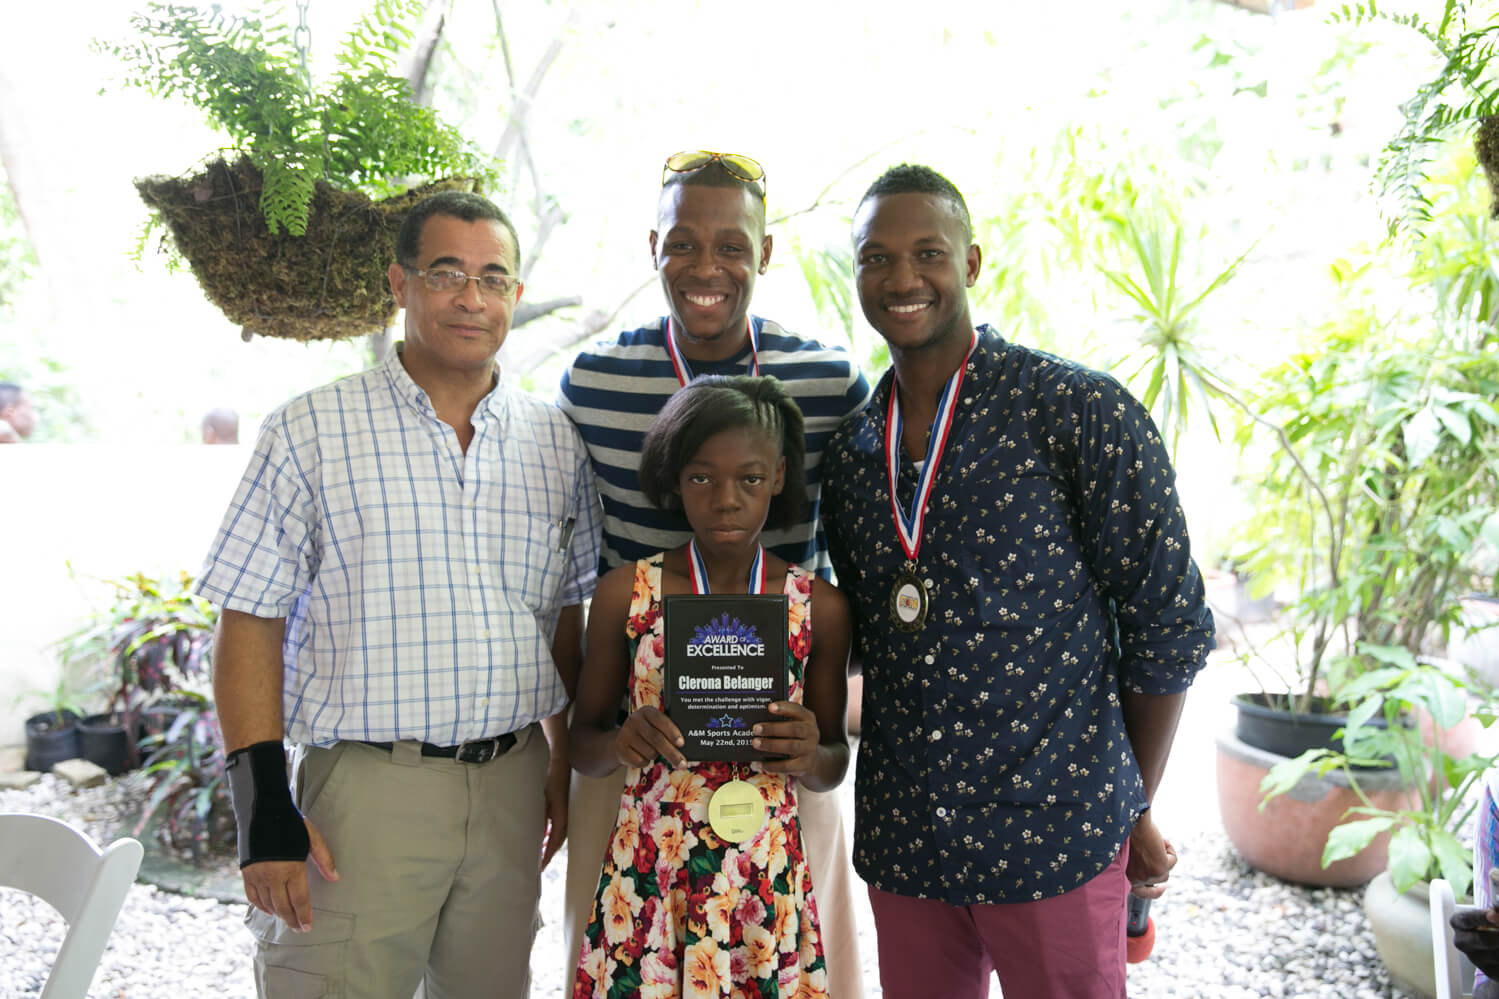 Clerona Berlinger, our first student enrolled in the Clean Hands for Haiti program, received the first Student of the Year award for her hard work, academic excellence, and dedication to her studies. After beginning school, she quickly became one of the top performing students in her entire class.